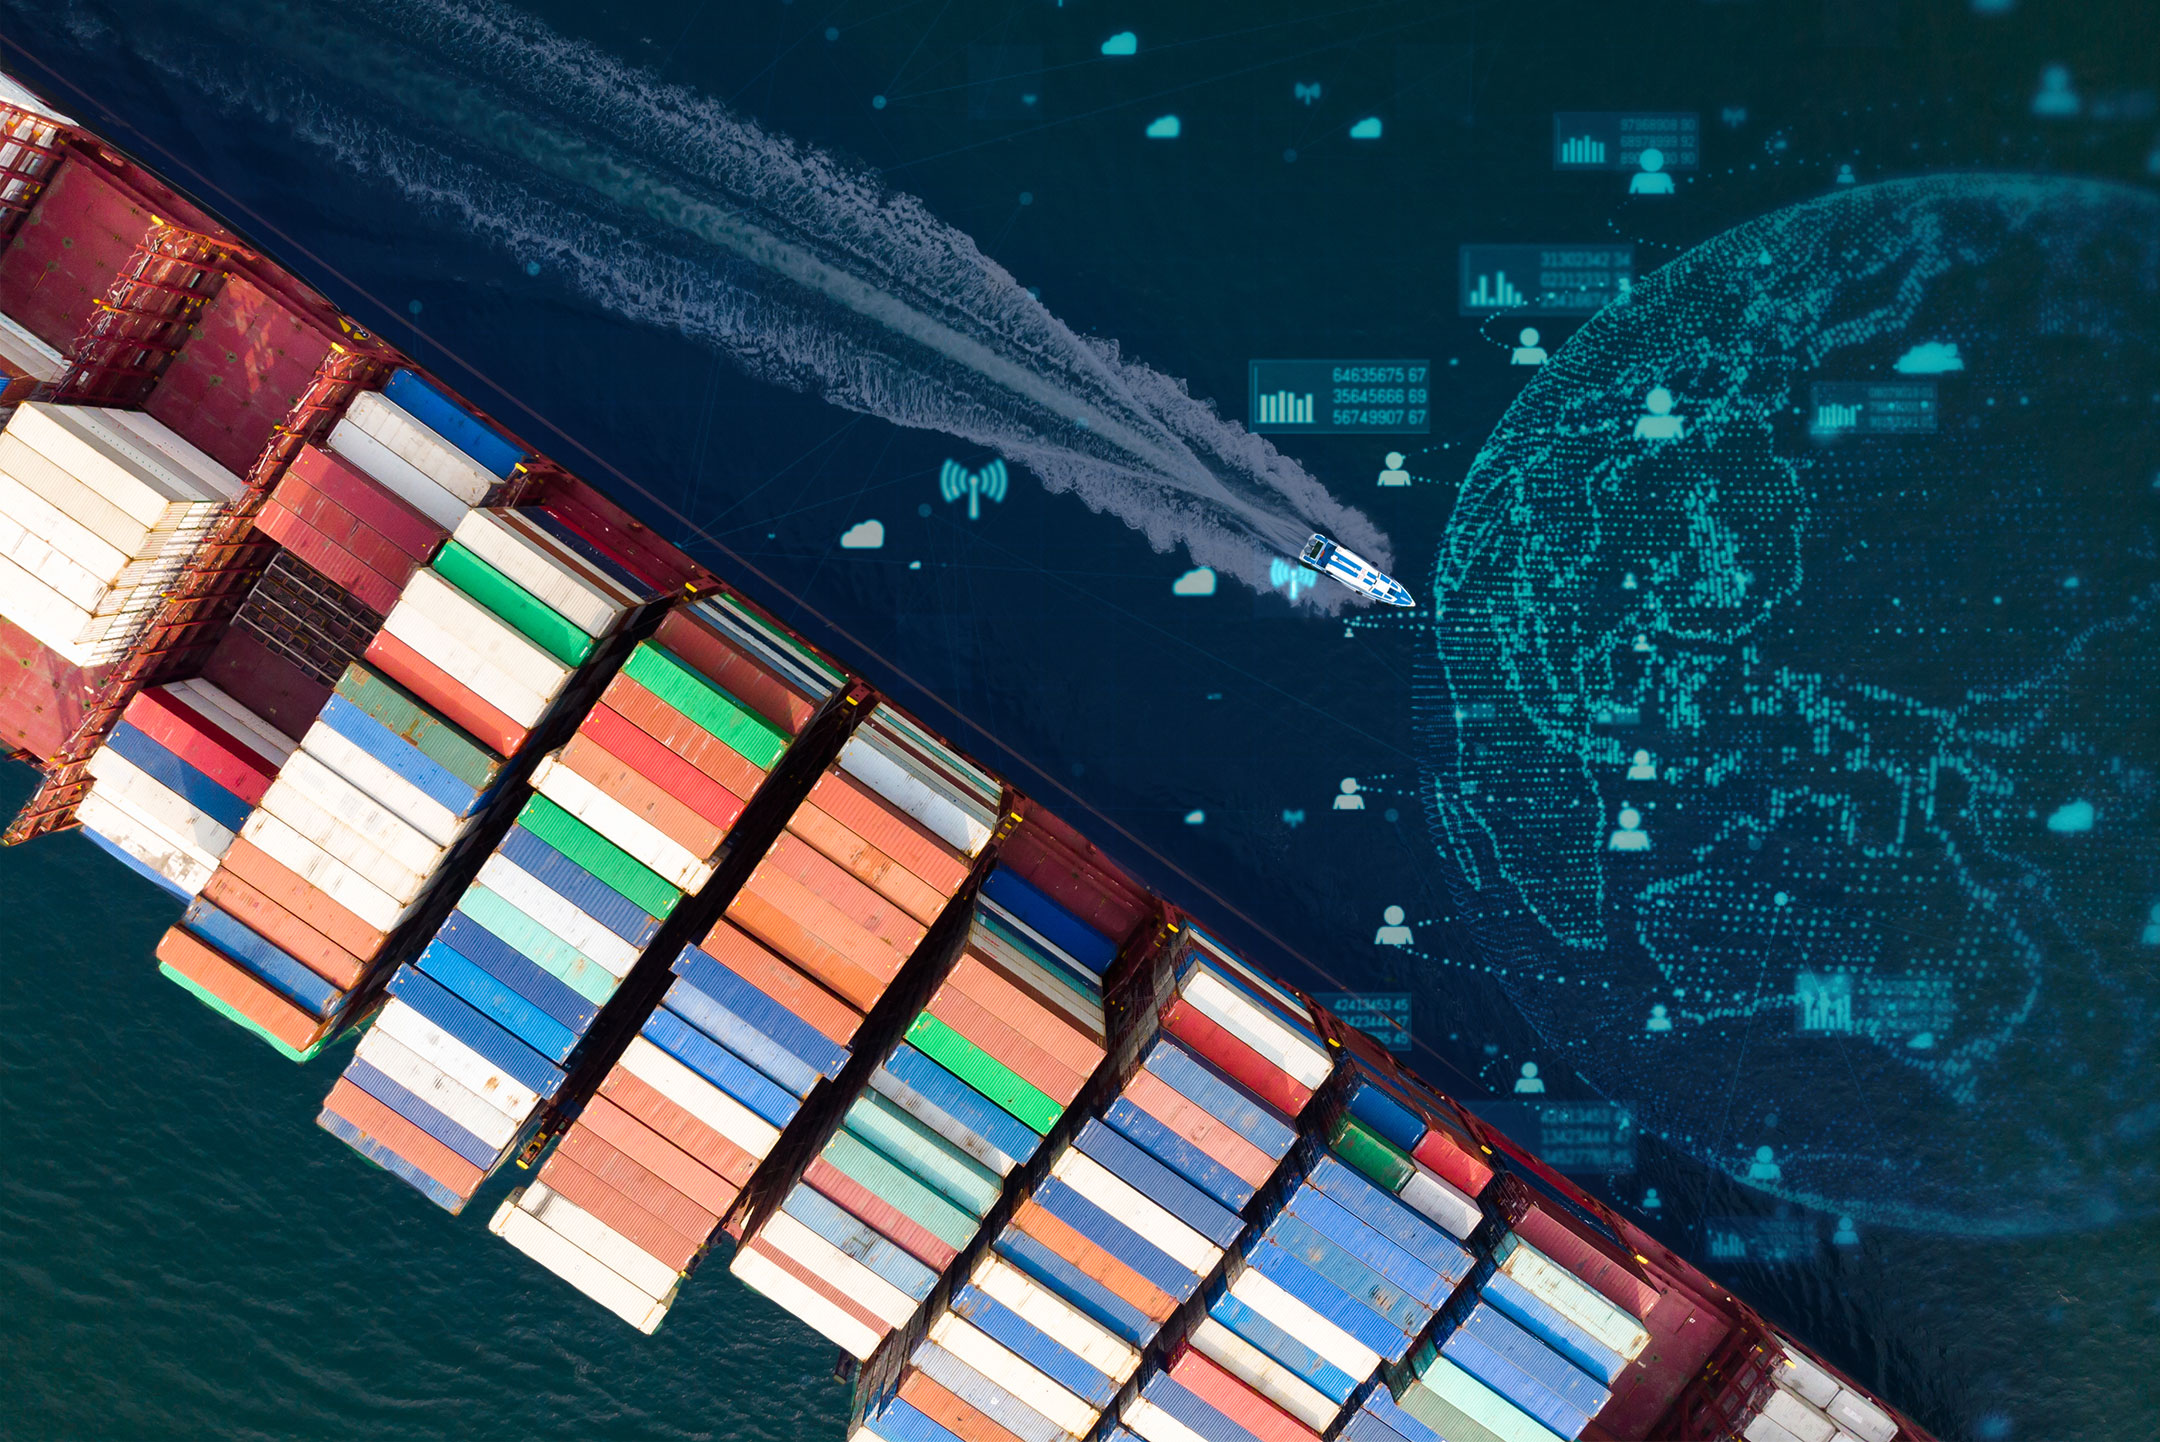 The key to best practice maritime cybersecurity